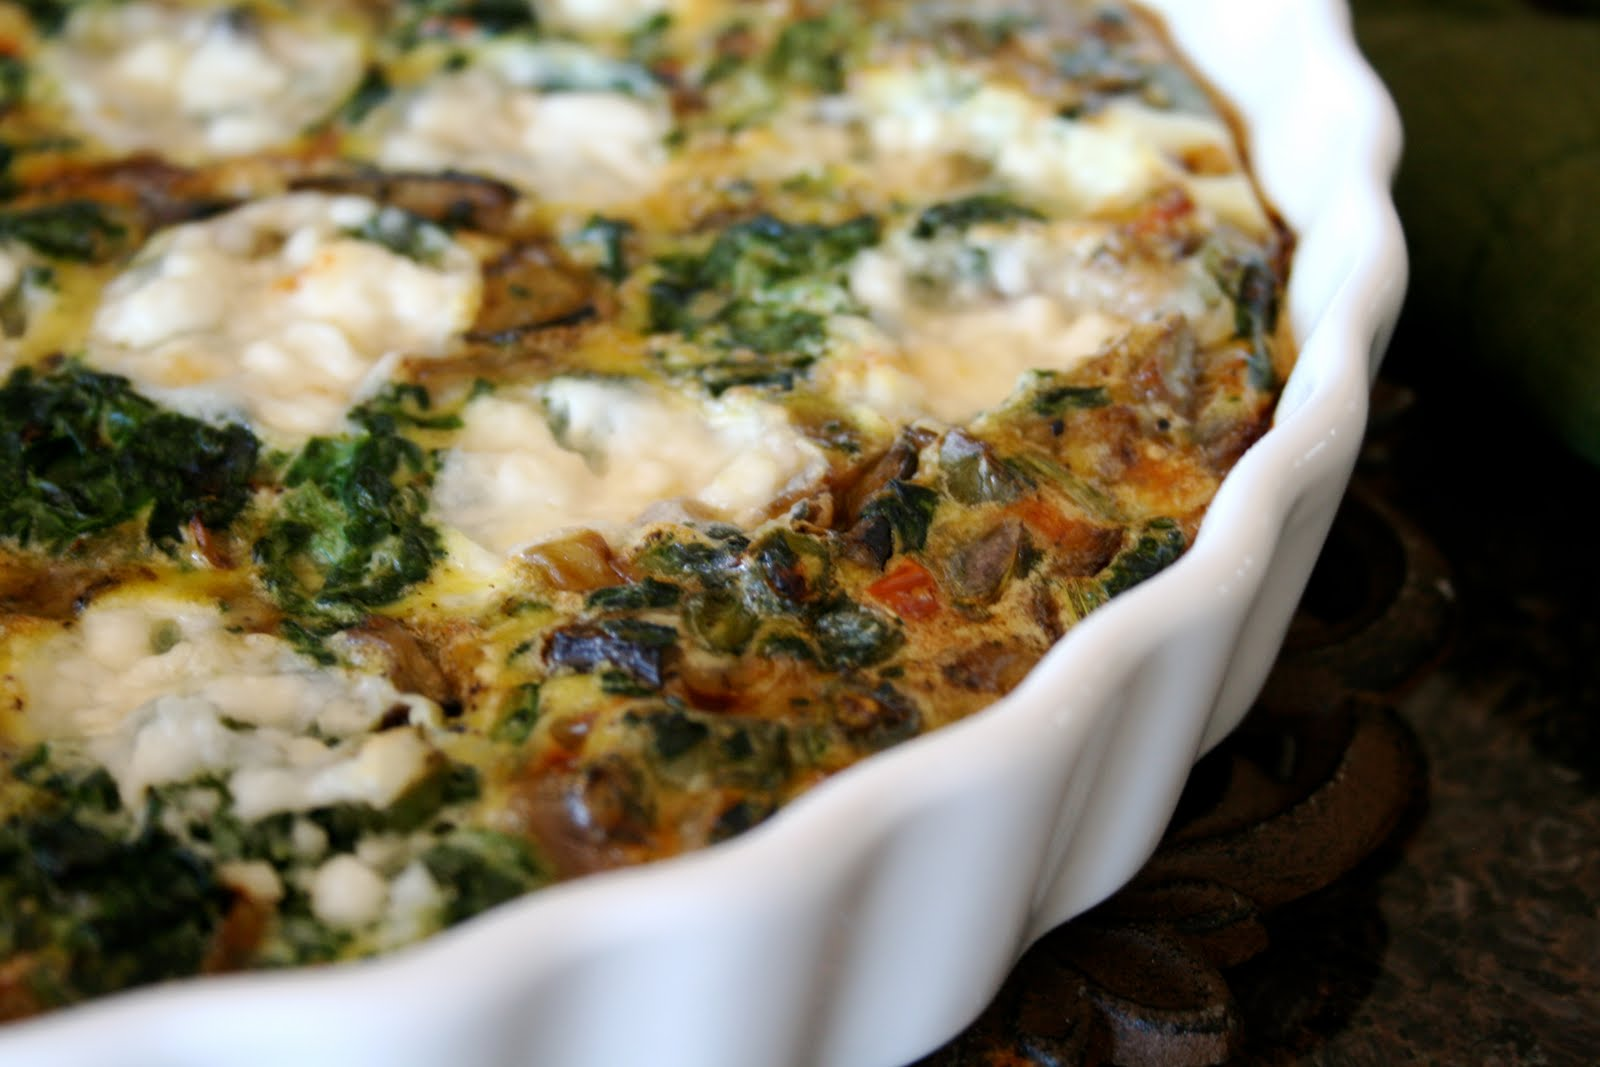 ... First Bite....Eating for a healthier life: Summer Vegetable Frittata